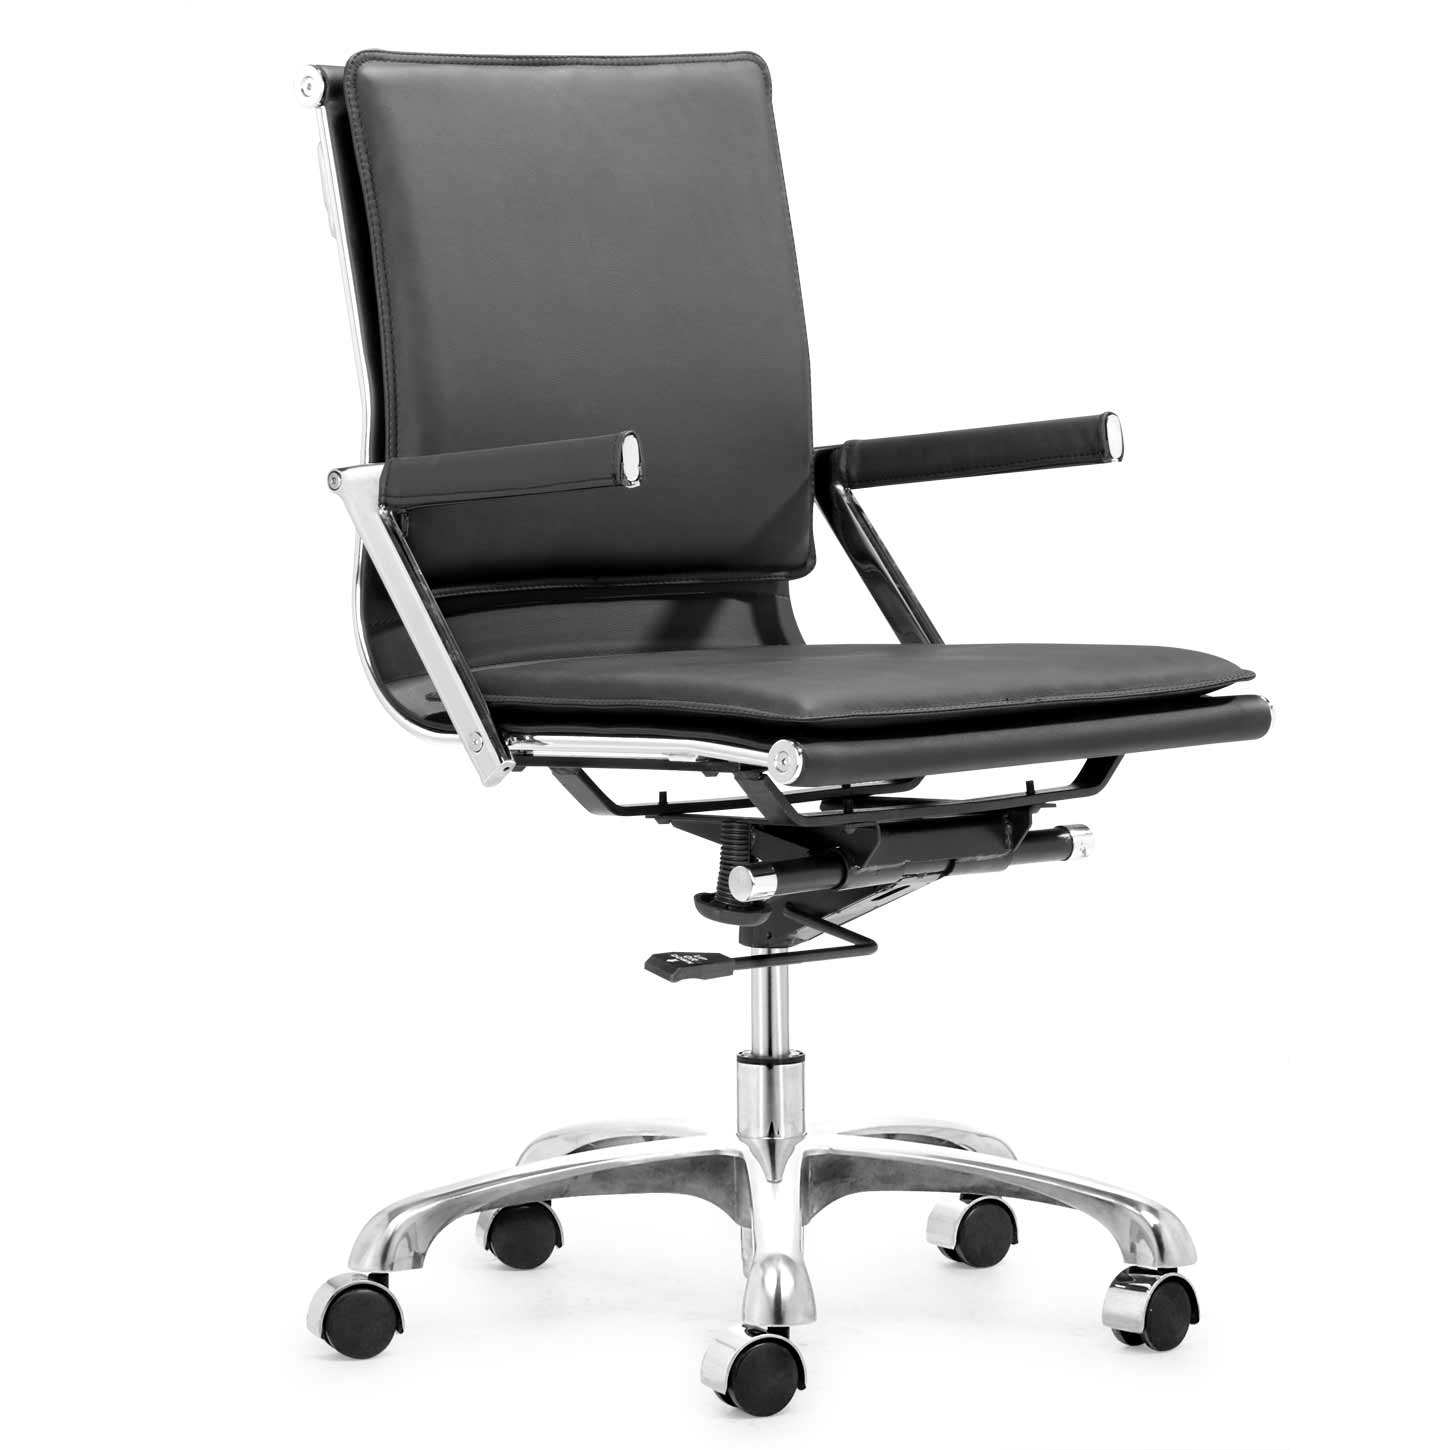 Adjustable height office furniture chair